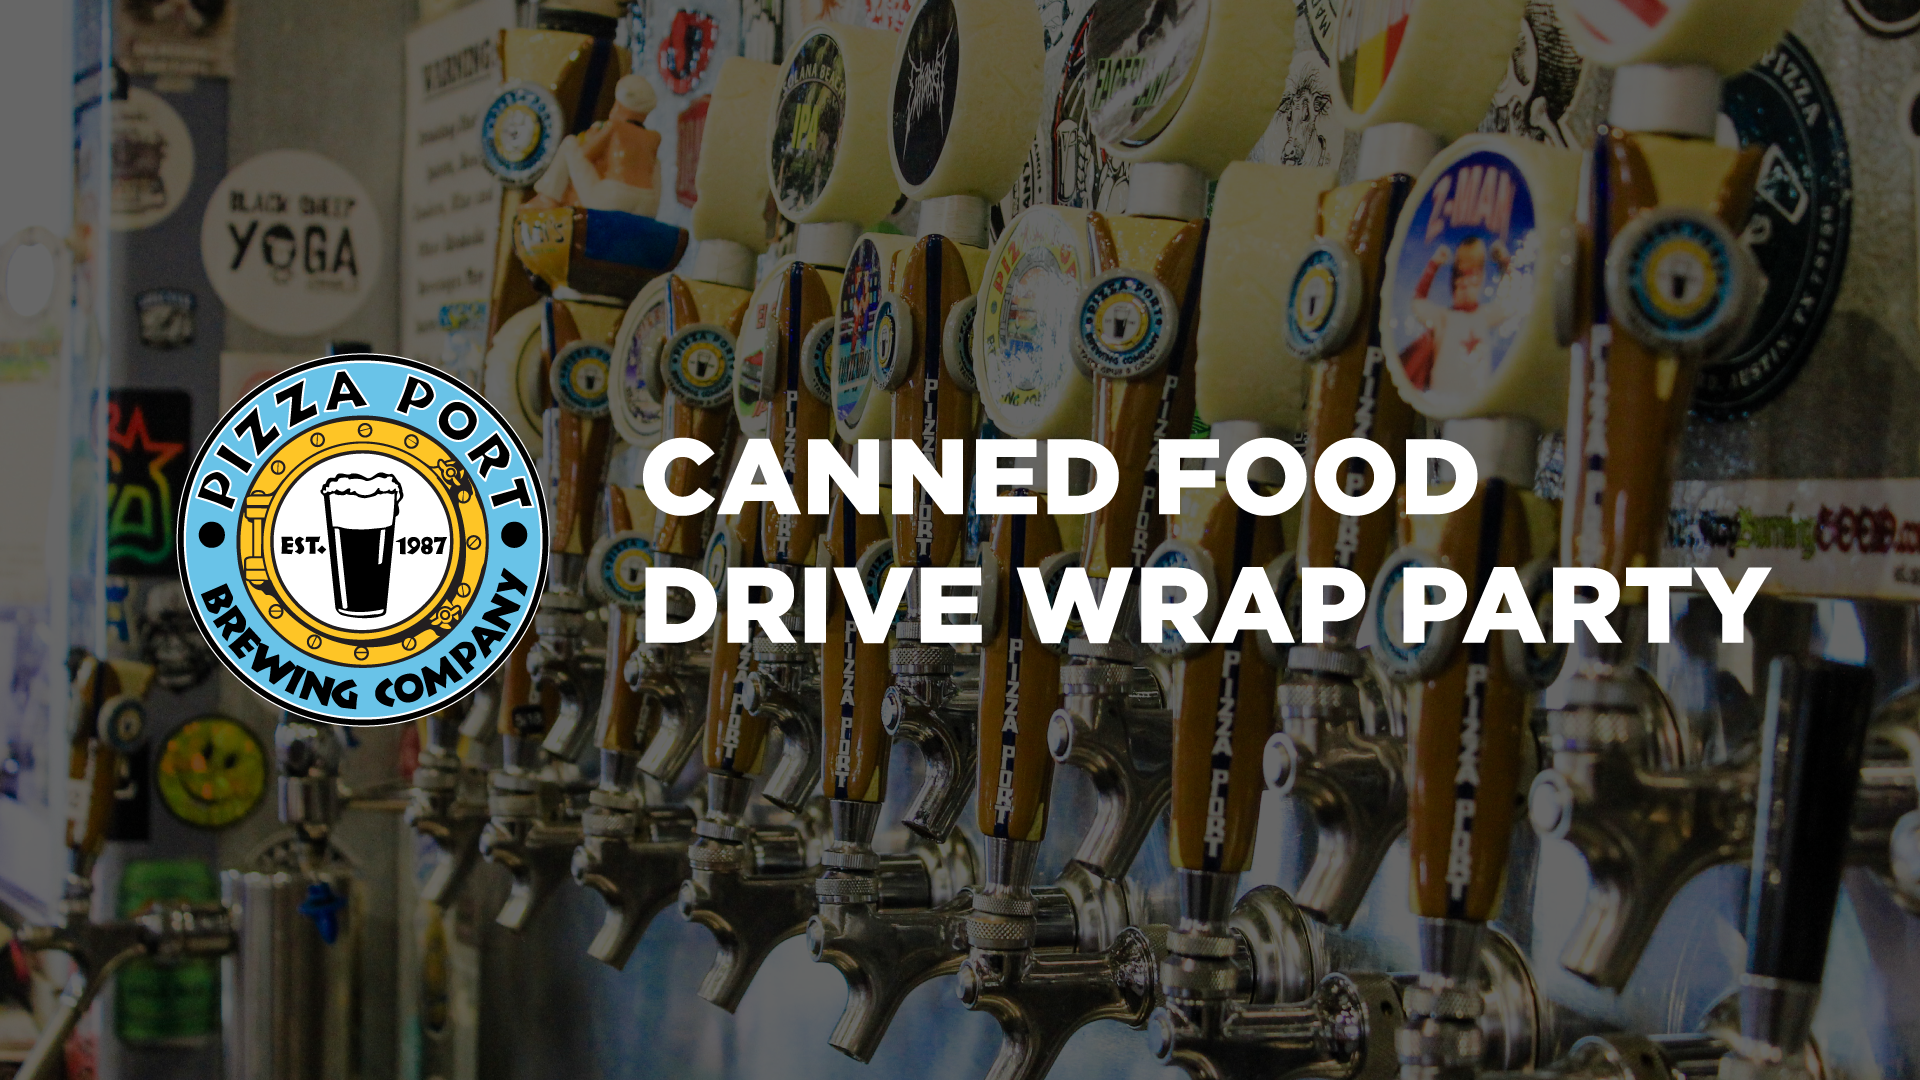 Canned Food Drive Wrap Party